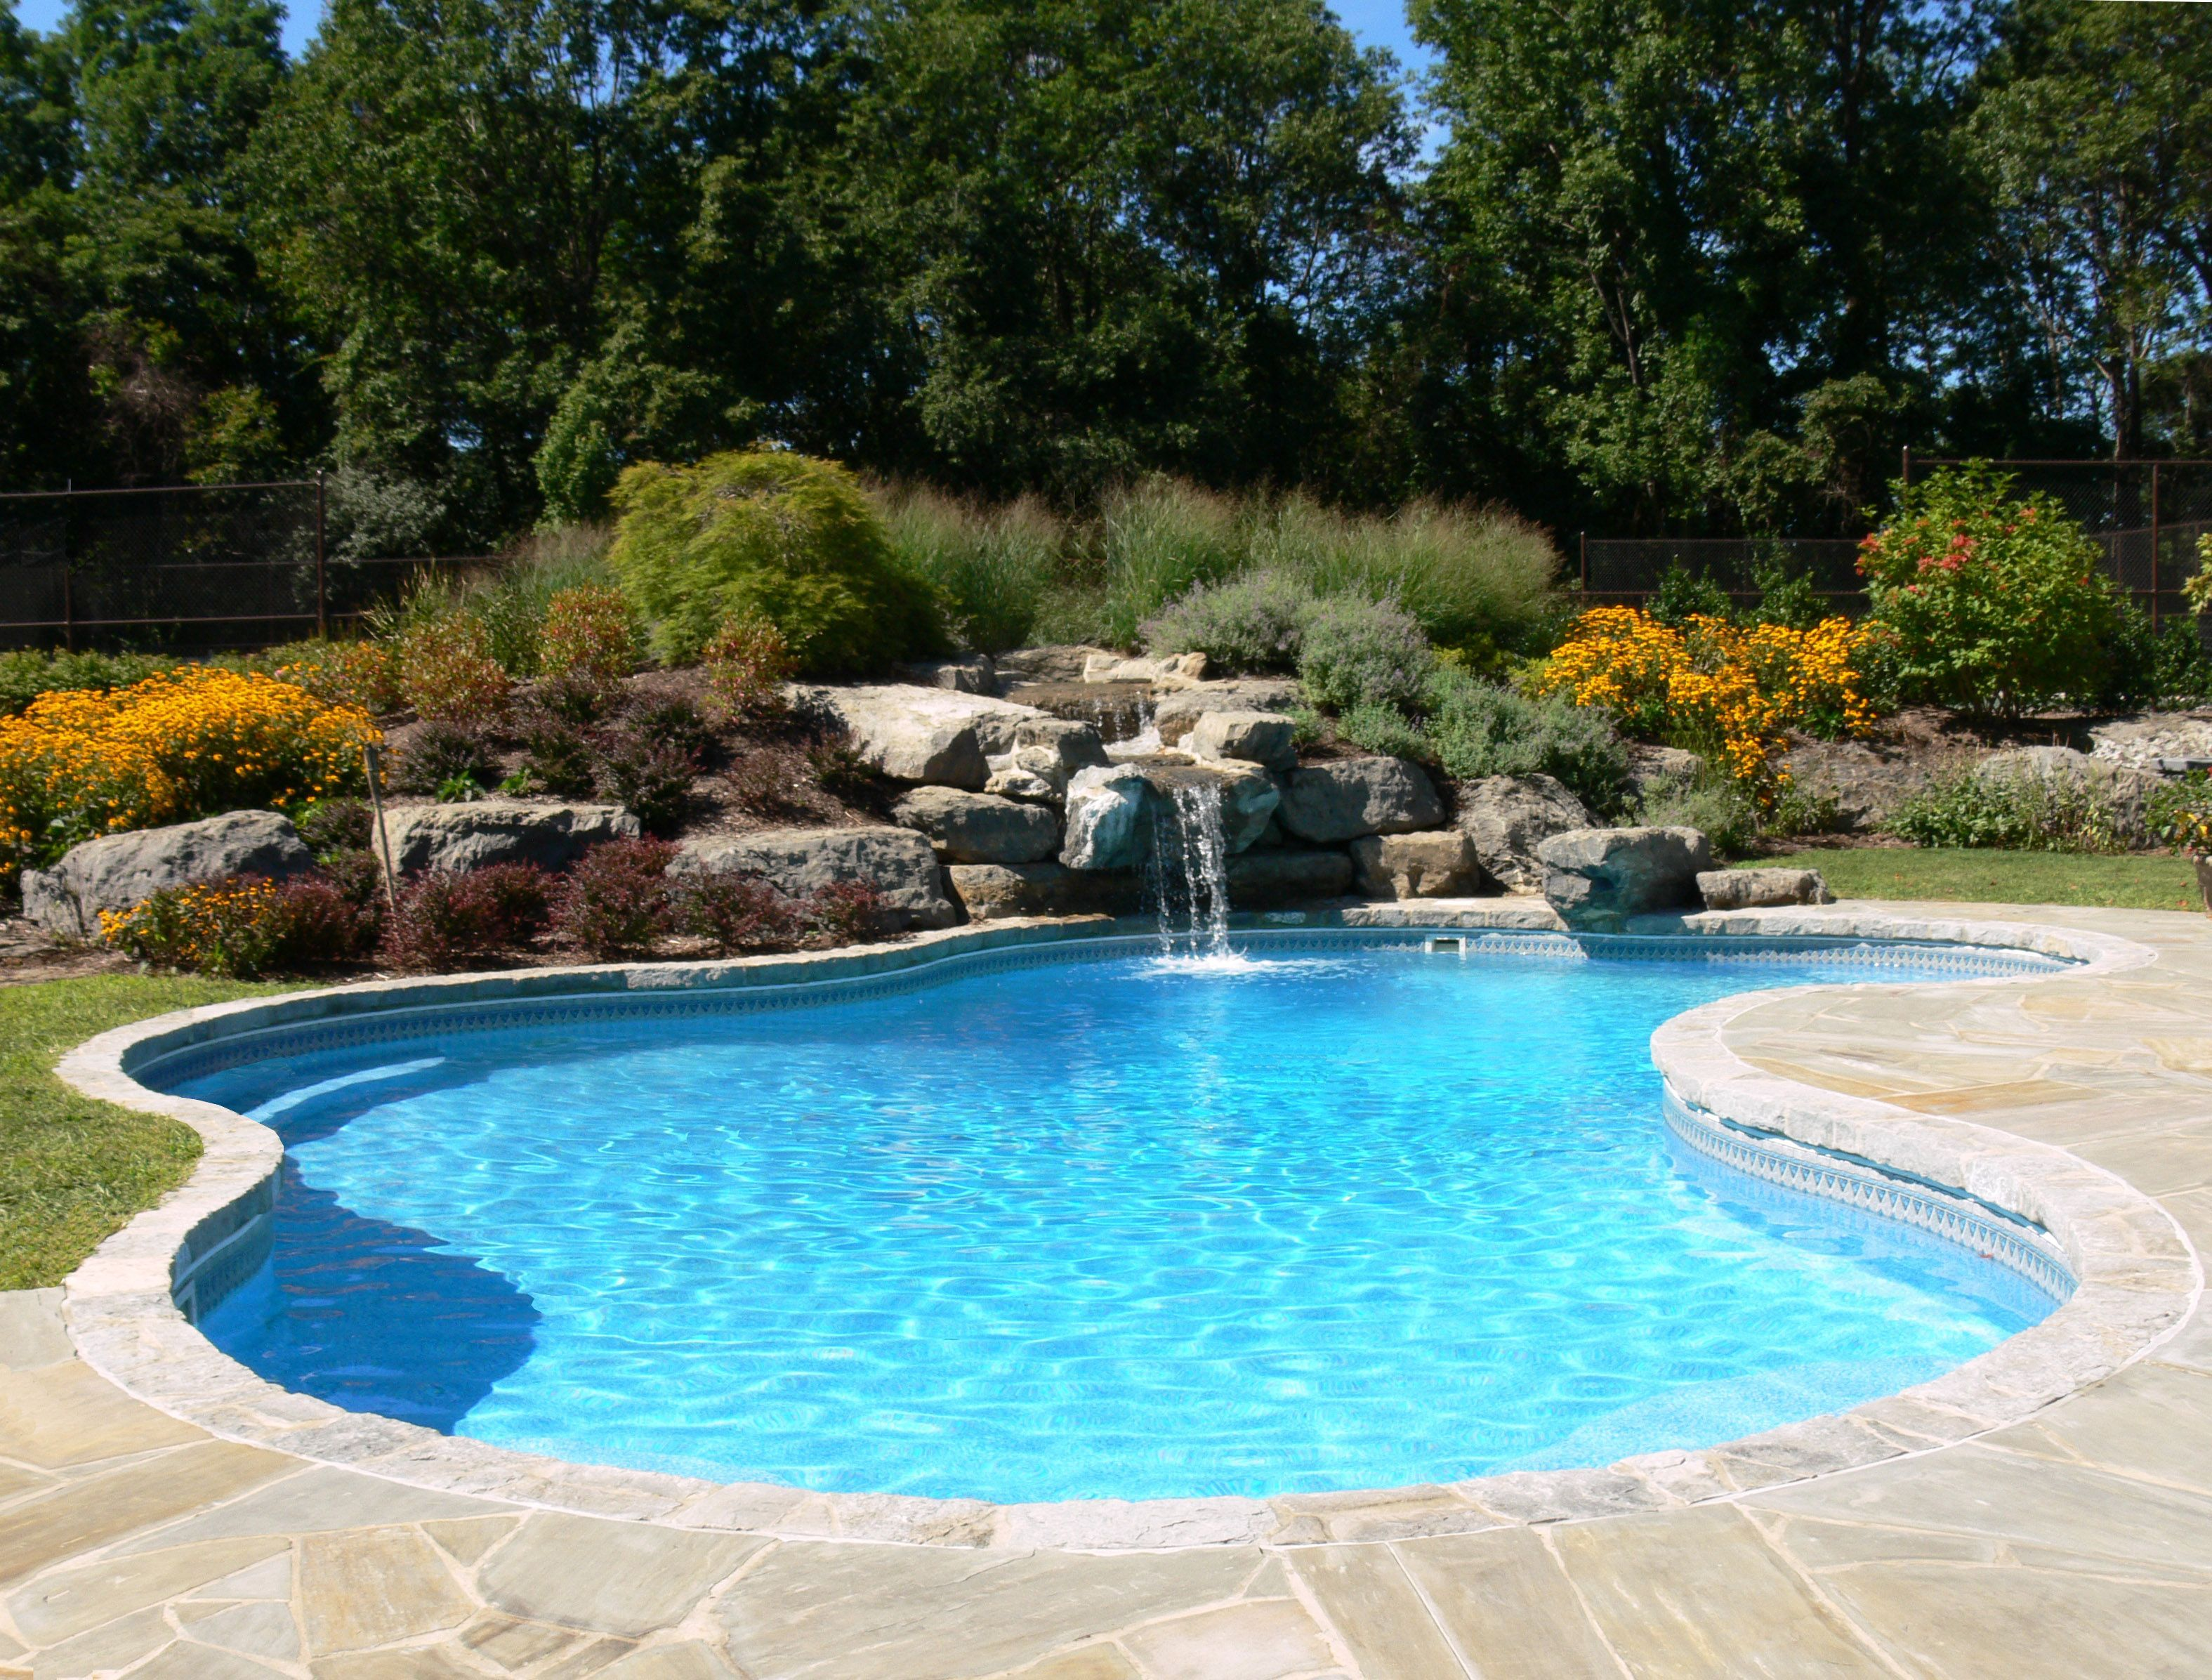 Lagoon Pool Kits From Pool Warehouse! | Pool Landscaping in 2019 ...